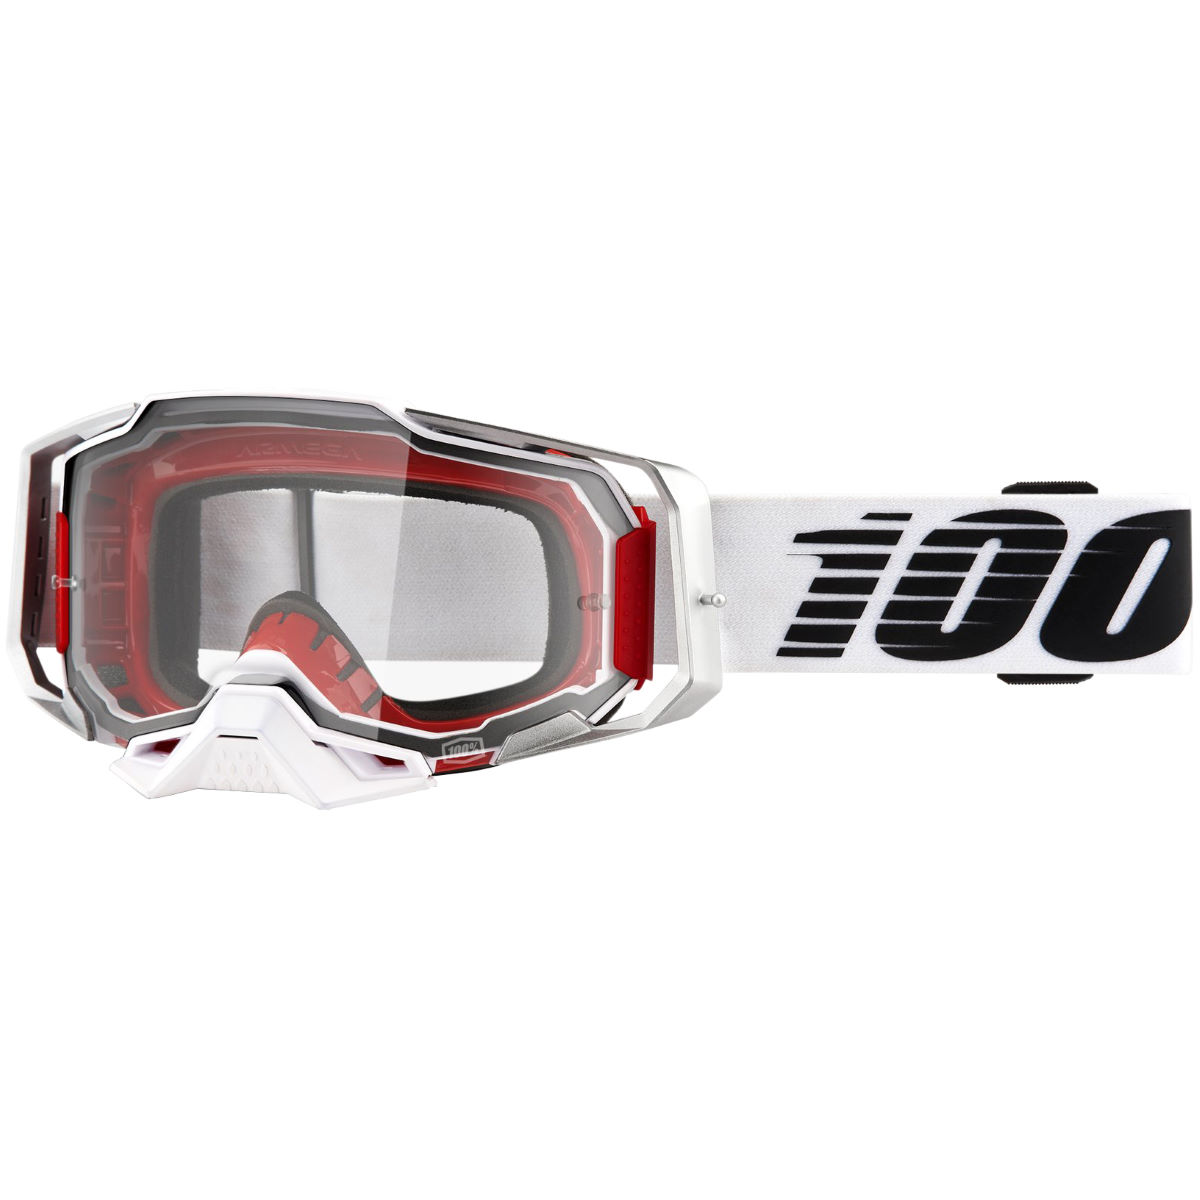 100% ARMEGA Goggle Lightsaber - ULTRA HD Clear Lens   Cycling Goggles